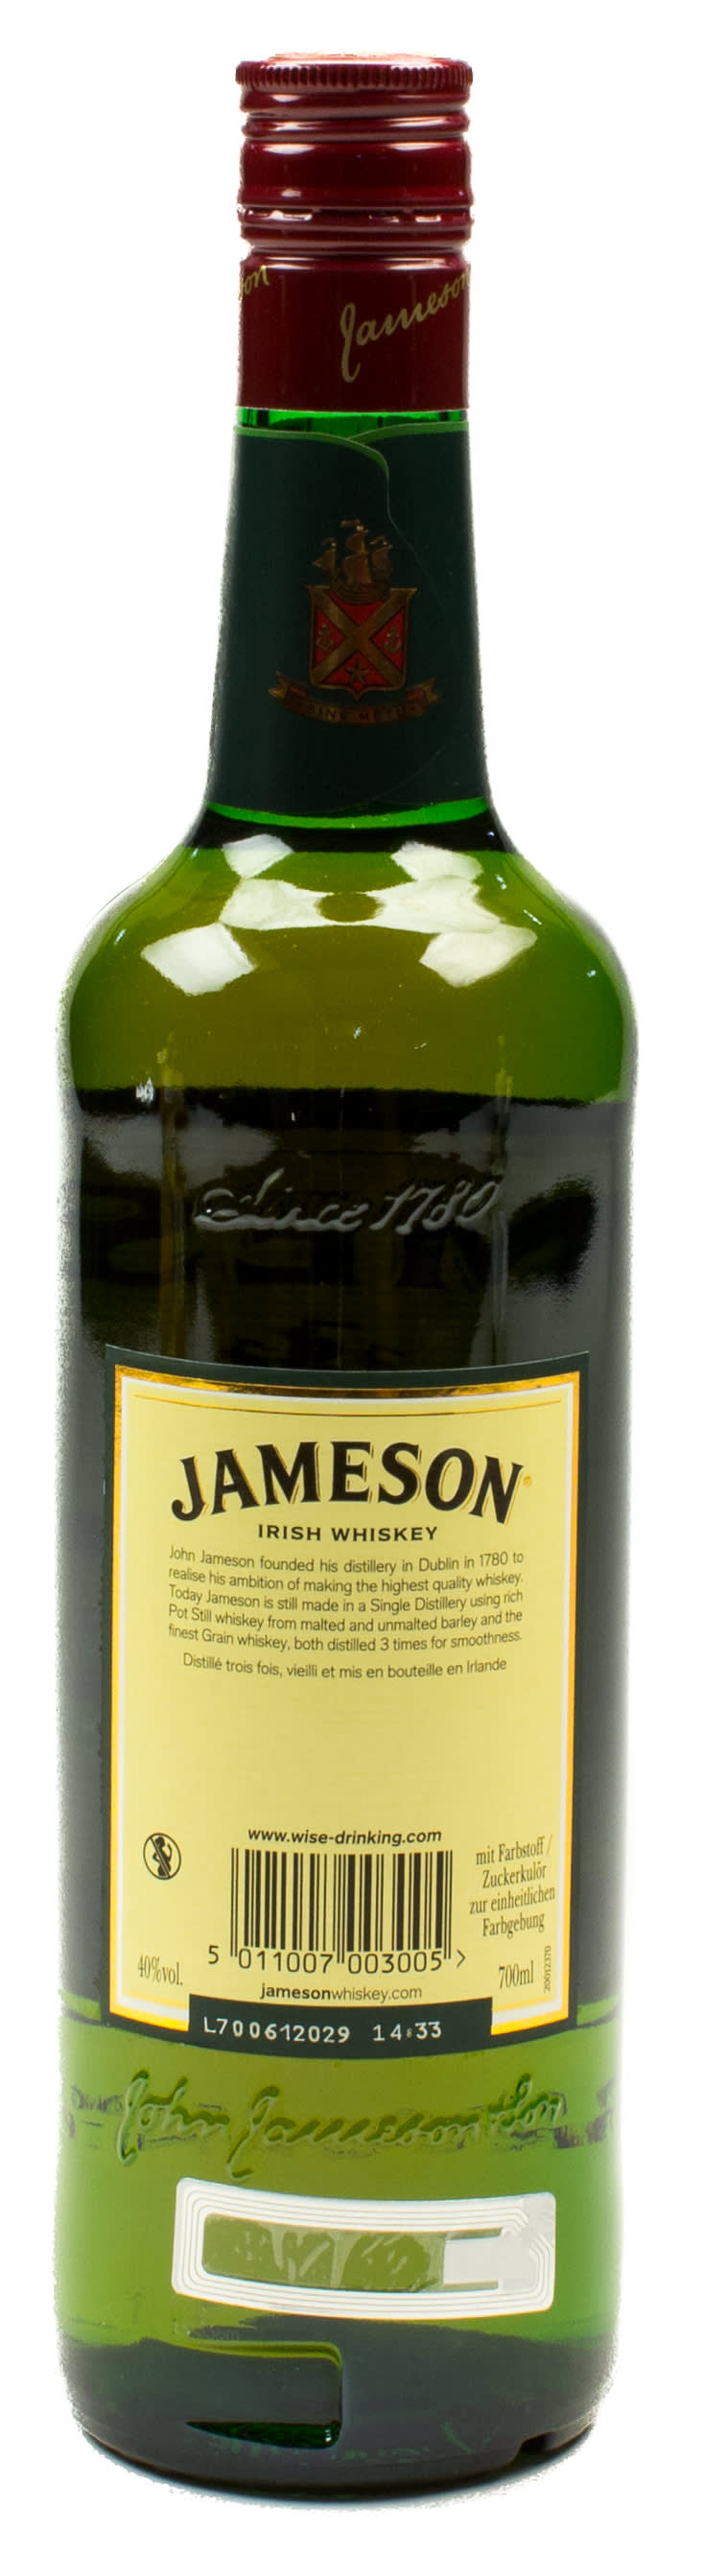 Jameson Irish Whiskey 0,7 l Glas